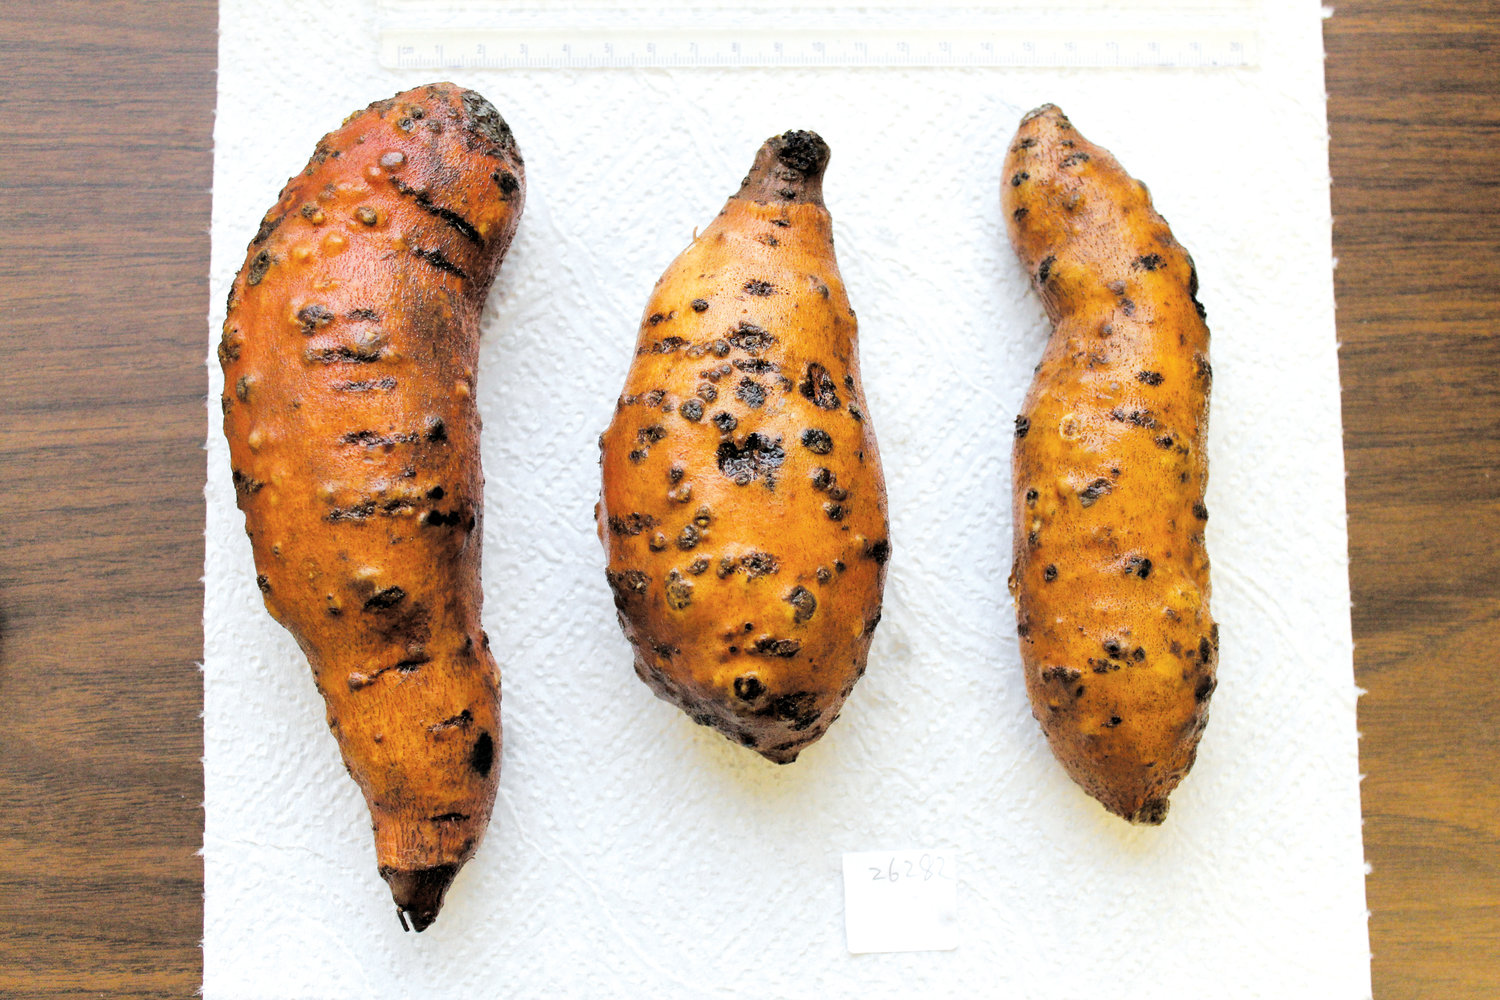 The North Carolina Department of Agriculture and Consumer Services has declared an internal quarantine on sweet potatoes due to the plant possibly being infected with the guava root knot nematode. The sweet potatoes seen here are in the advanced stages of being infected with the nematode that is spread through roots and soil. The quarantine does not affect fresh market sweet potatoes.